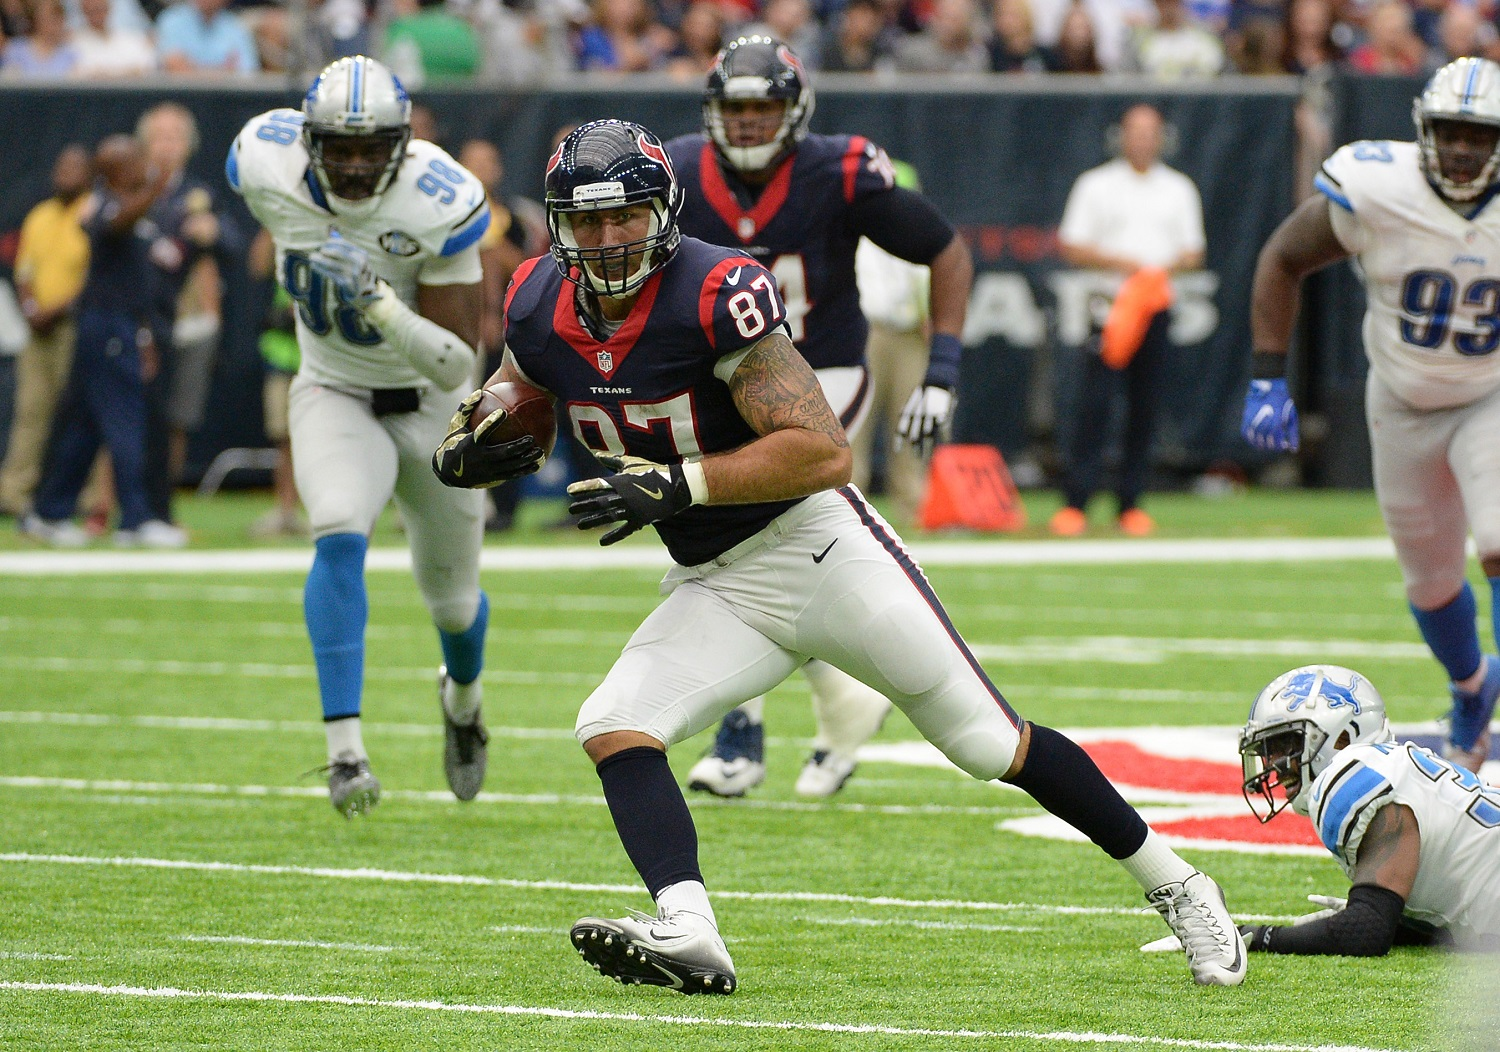 Houston Texans tight end C.J. Fiedorowicz (87) runs past Detroit Lions defender Tavon Wilson (32) during the first half of an NFL football game Sunday, October, 30, 2016, in Houston. (AP Photo/George Bridges)